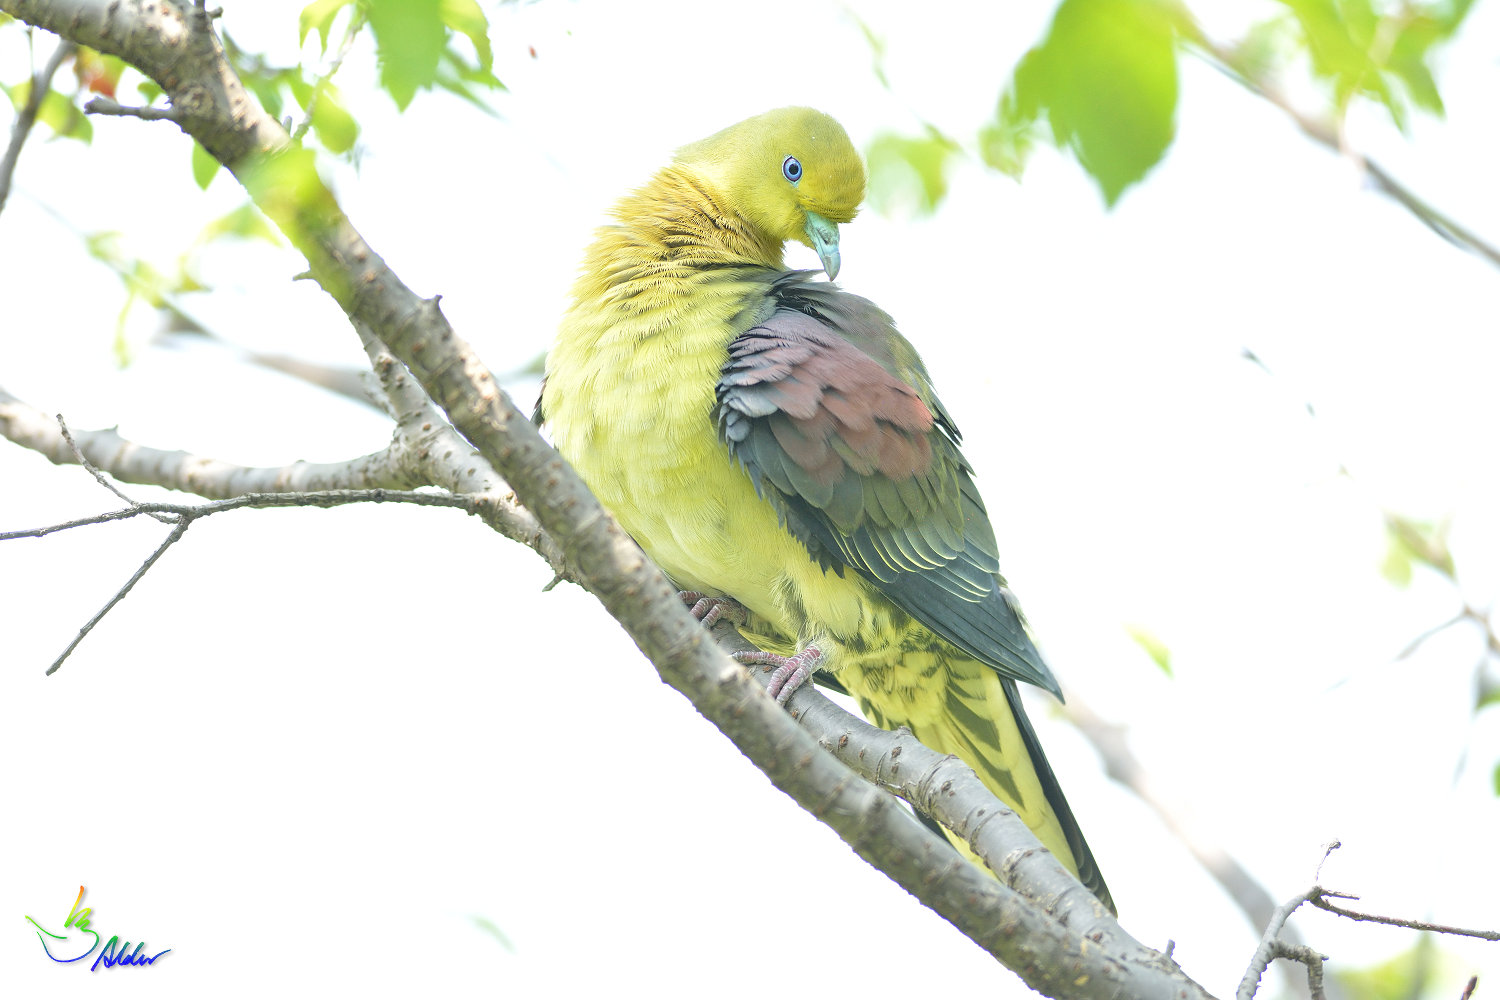 White-bellied_Green_Pigeon_5903